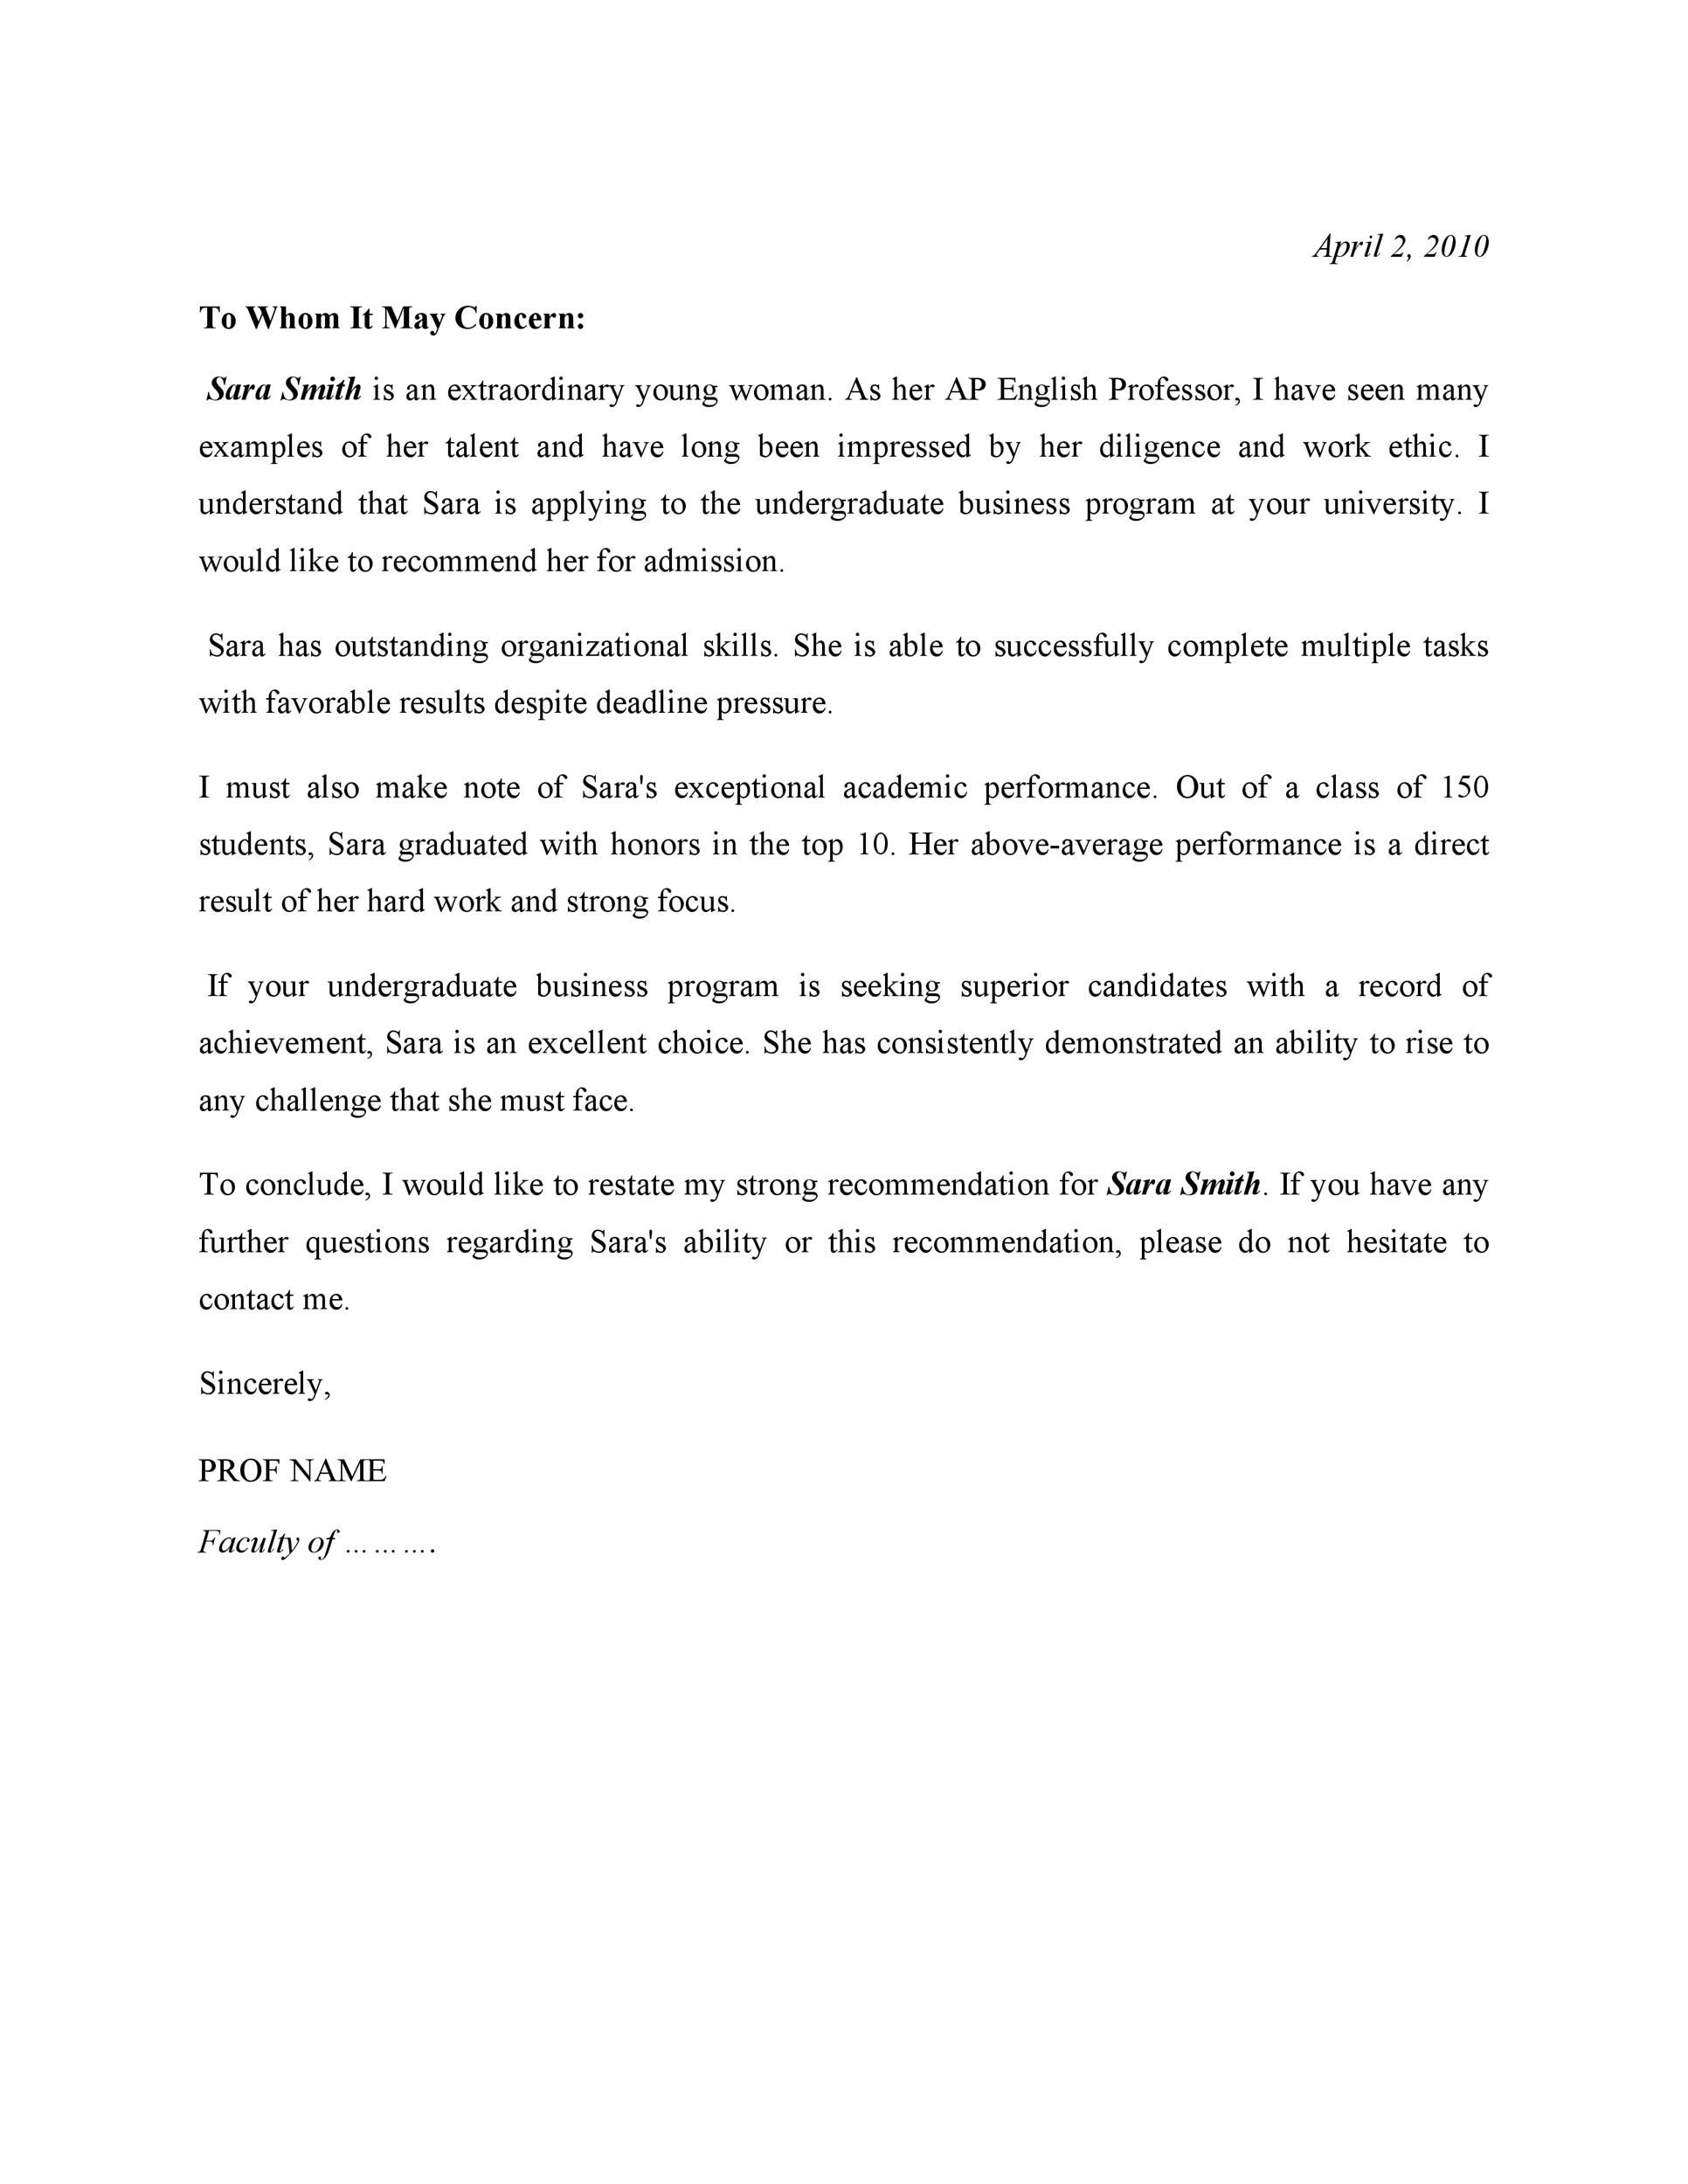 006 Frightening Letter Of Recommendation Template For College Student Image  Sample From ProfessorFull